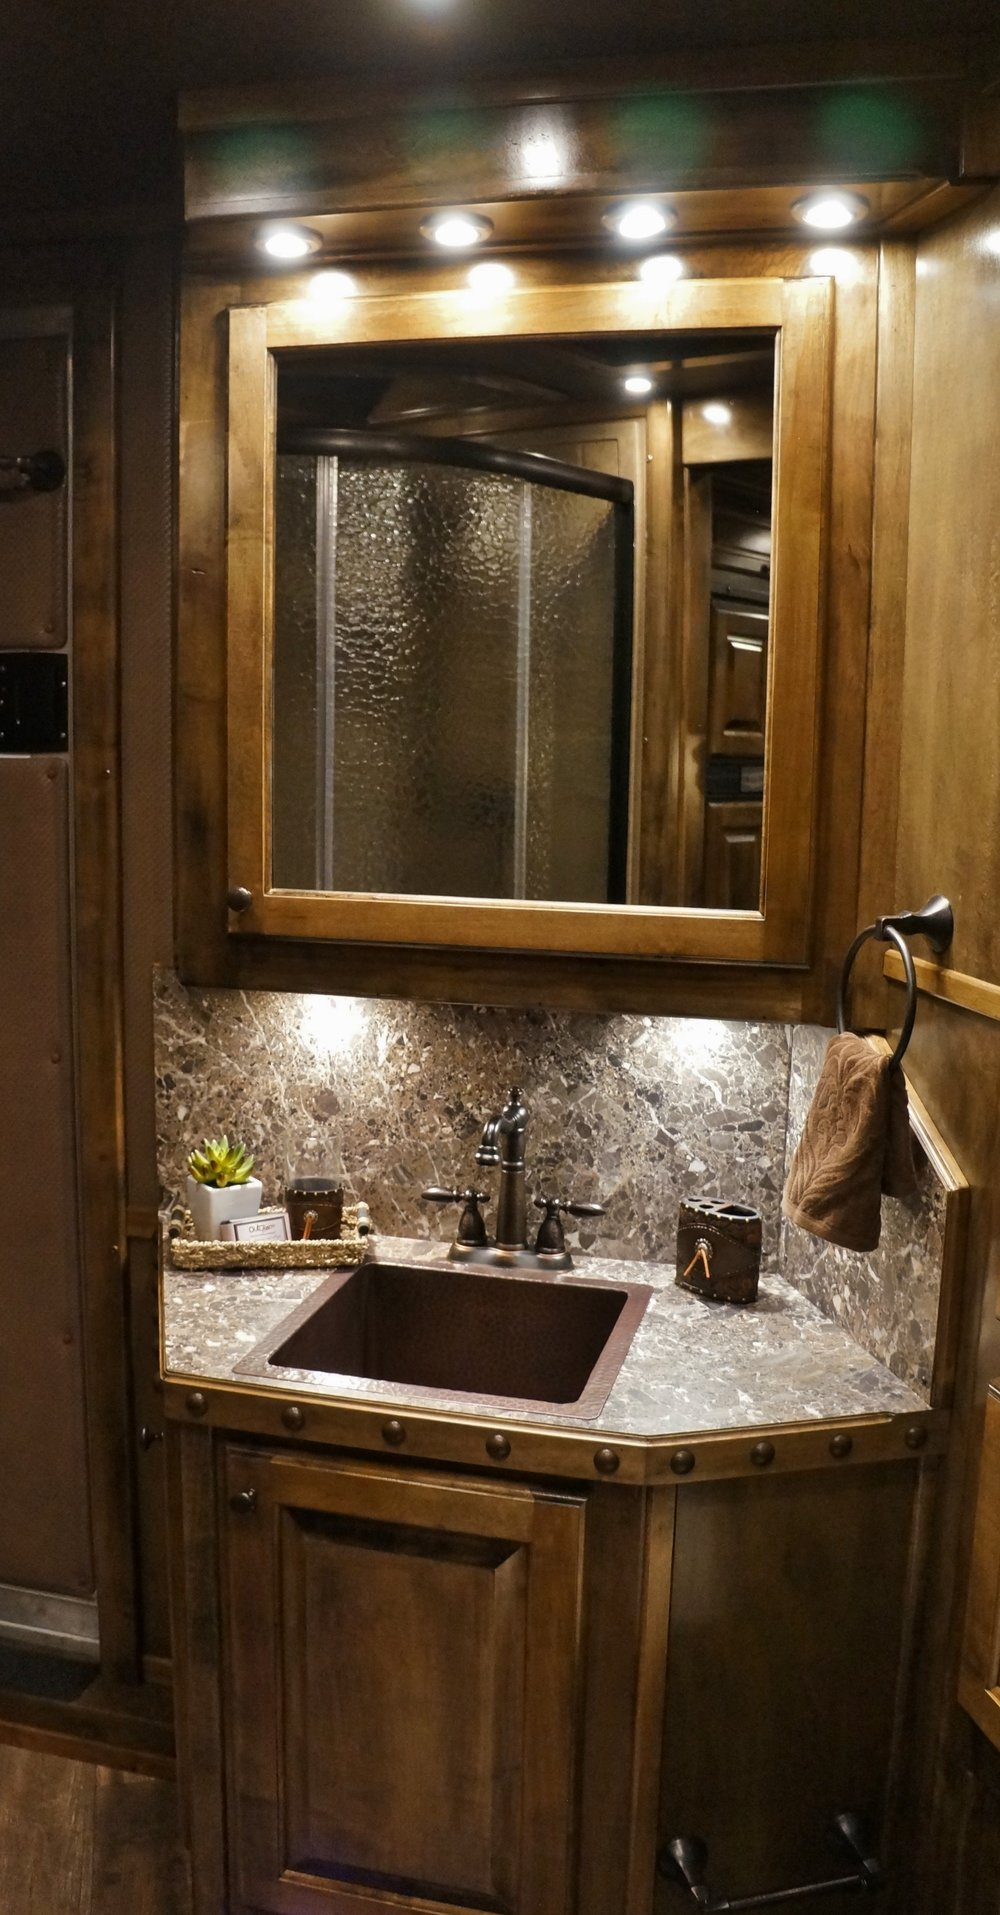 Copper Square Sink with Bronze Faucet